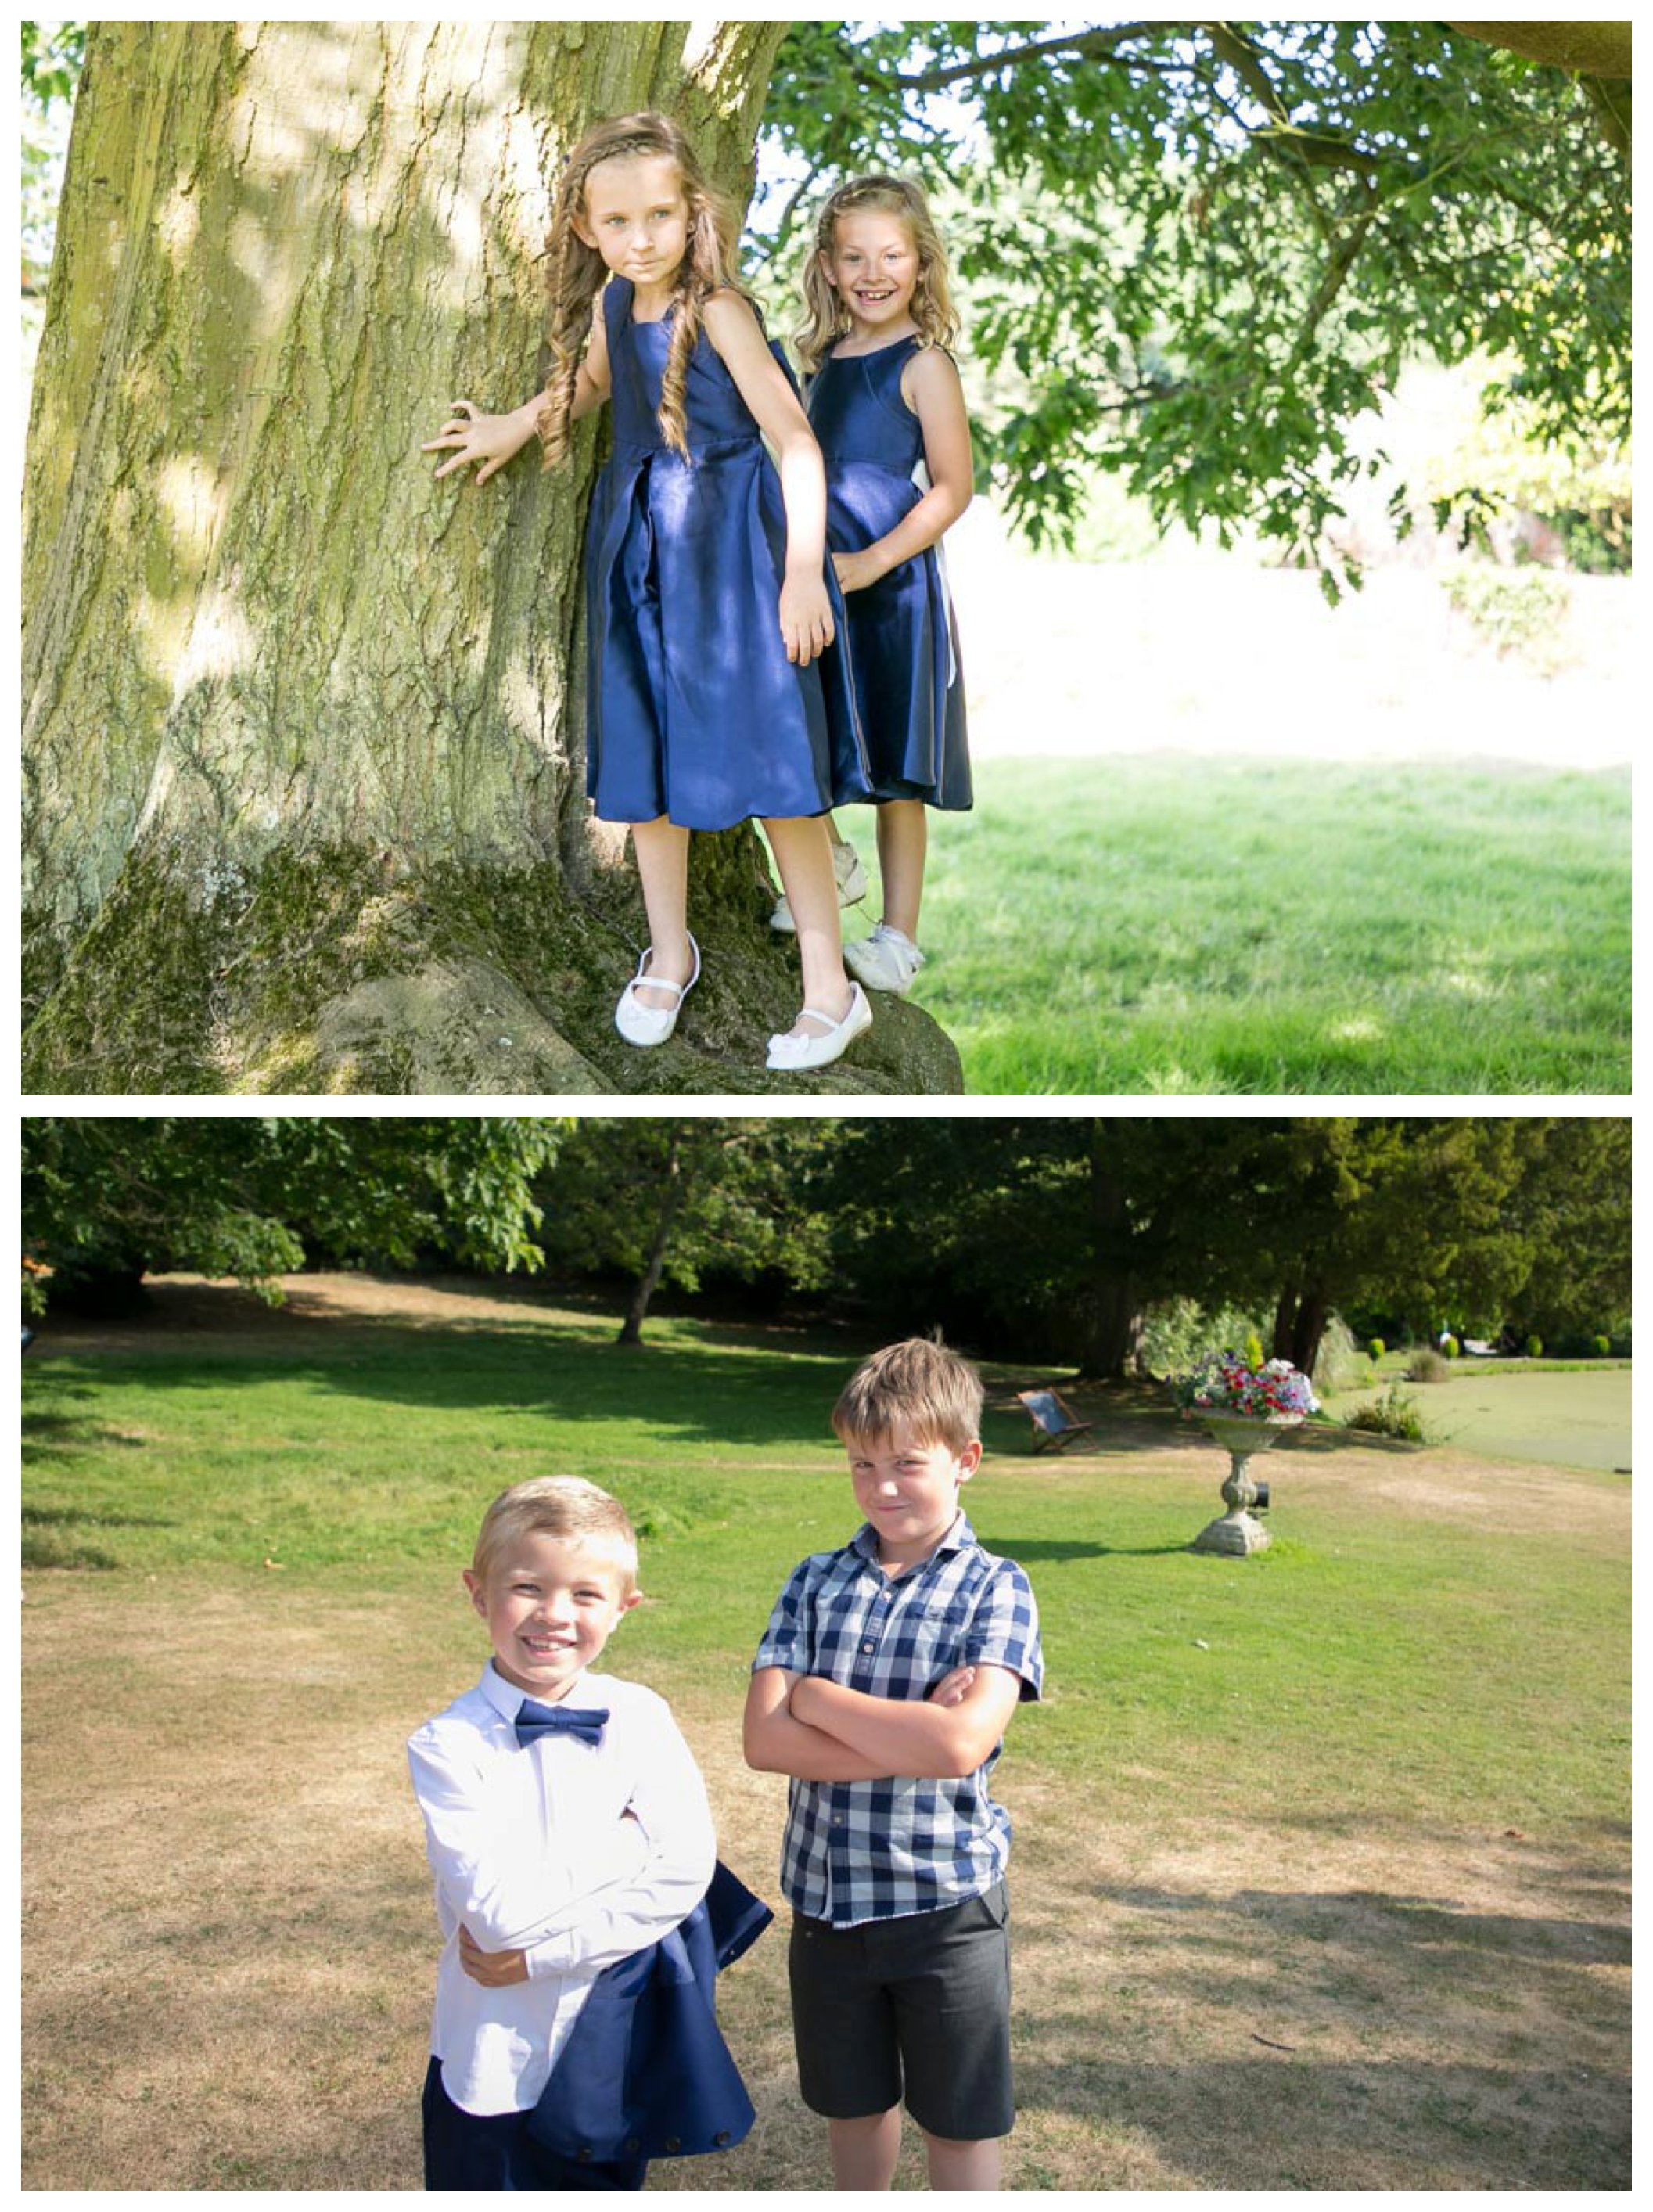 kids at fun suffolk wedding in the sunshine